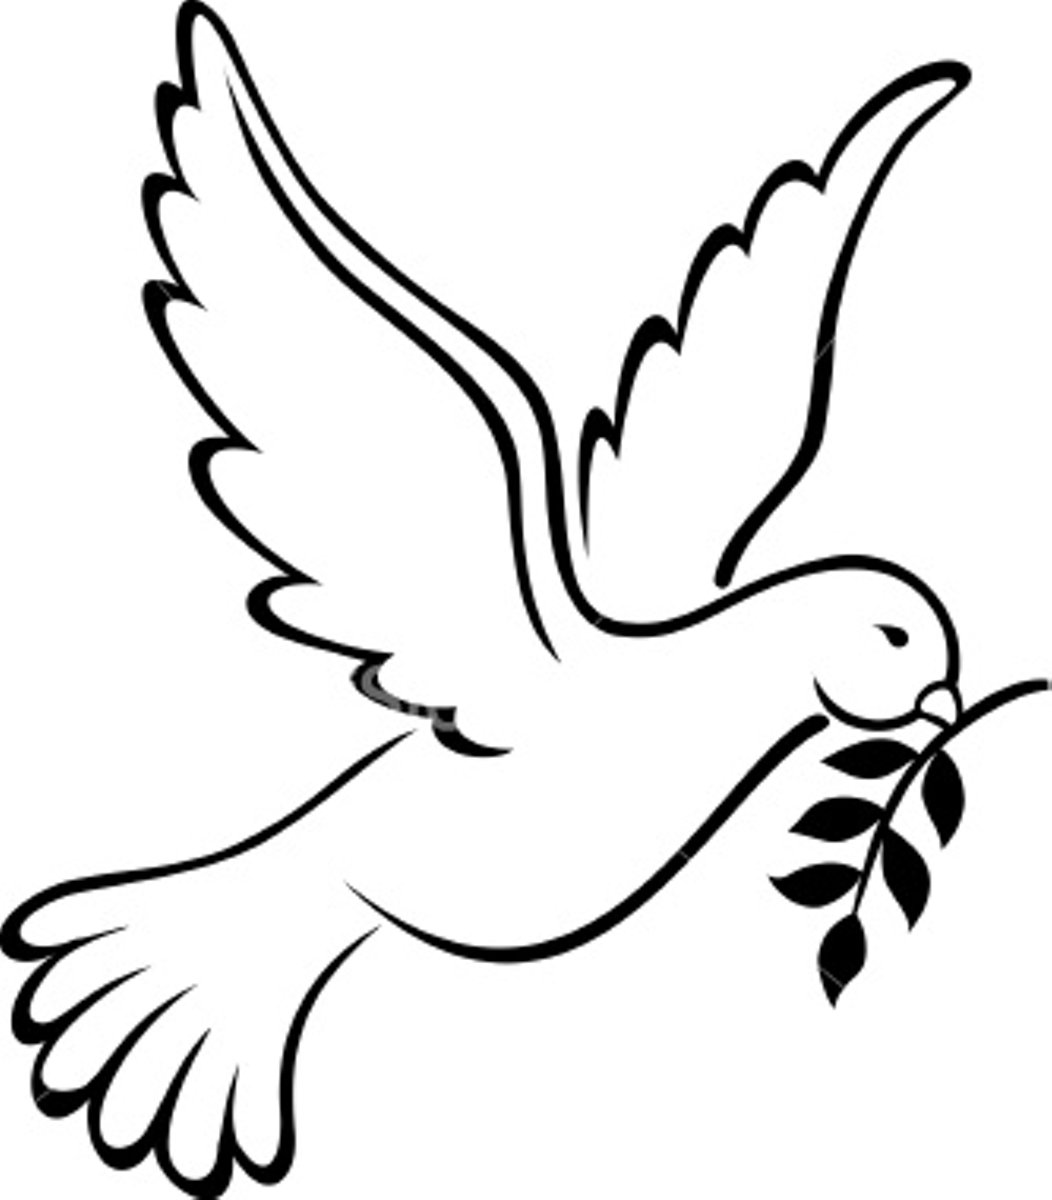 Cross dove pictures download. Free black and white large print christmas clipart